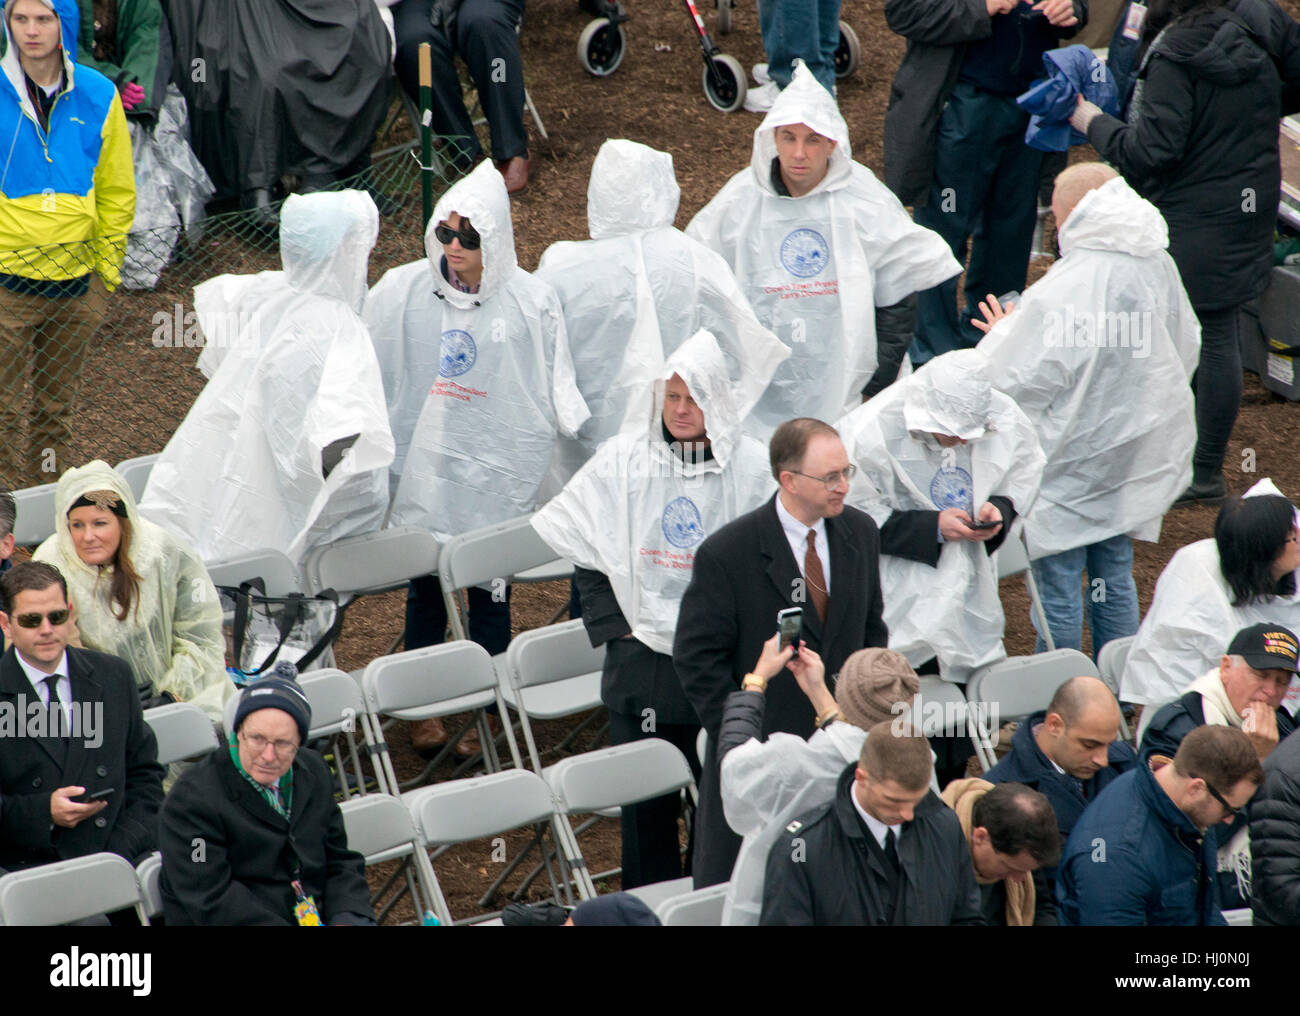 People wearing ponchos protect themselves from the rain prior to Donald J. Trump being sworn-in as the 45th President - Stock Image